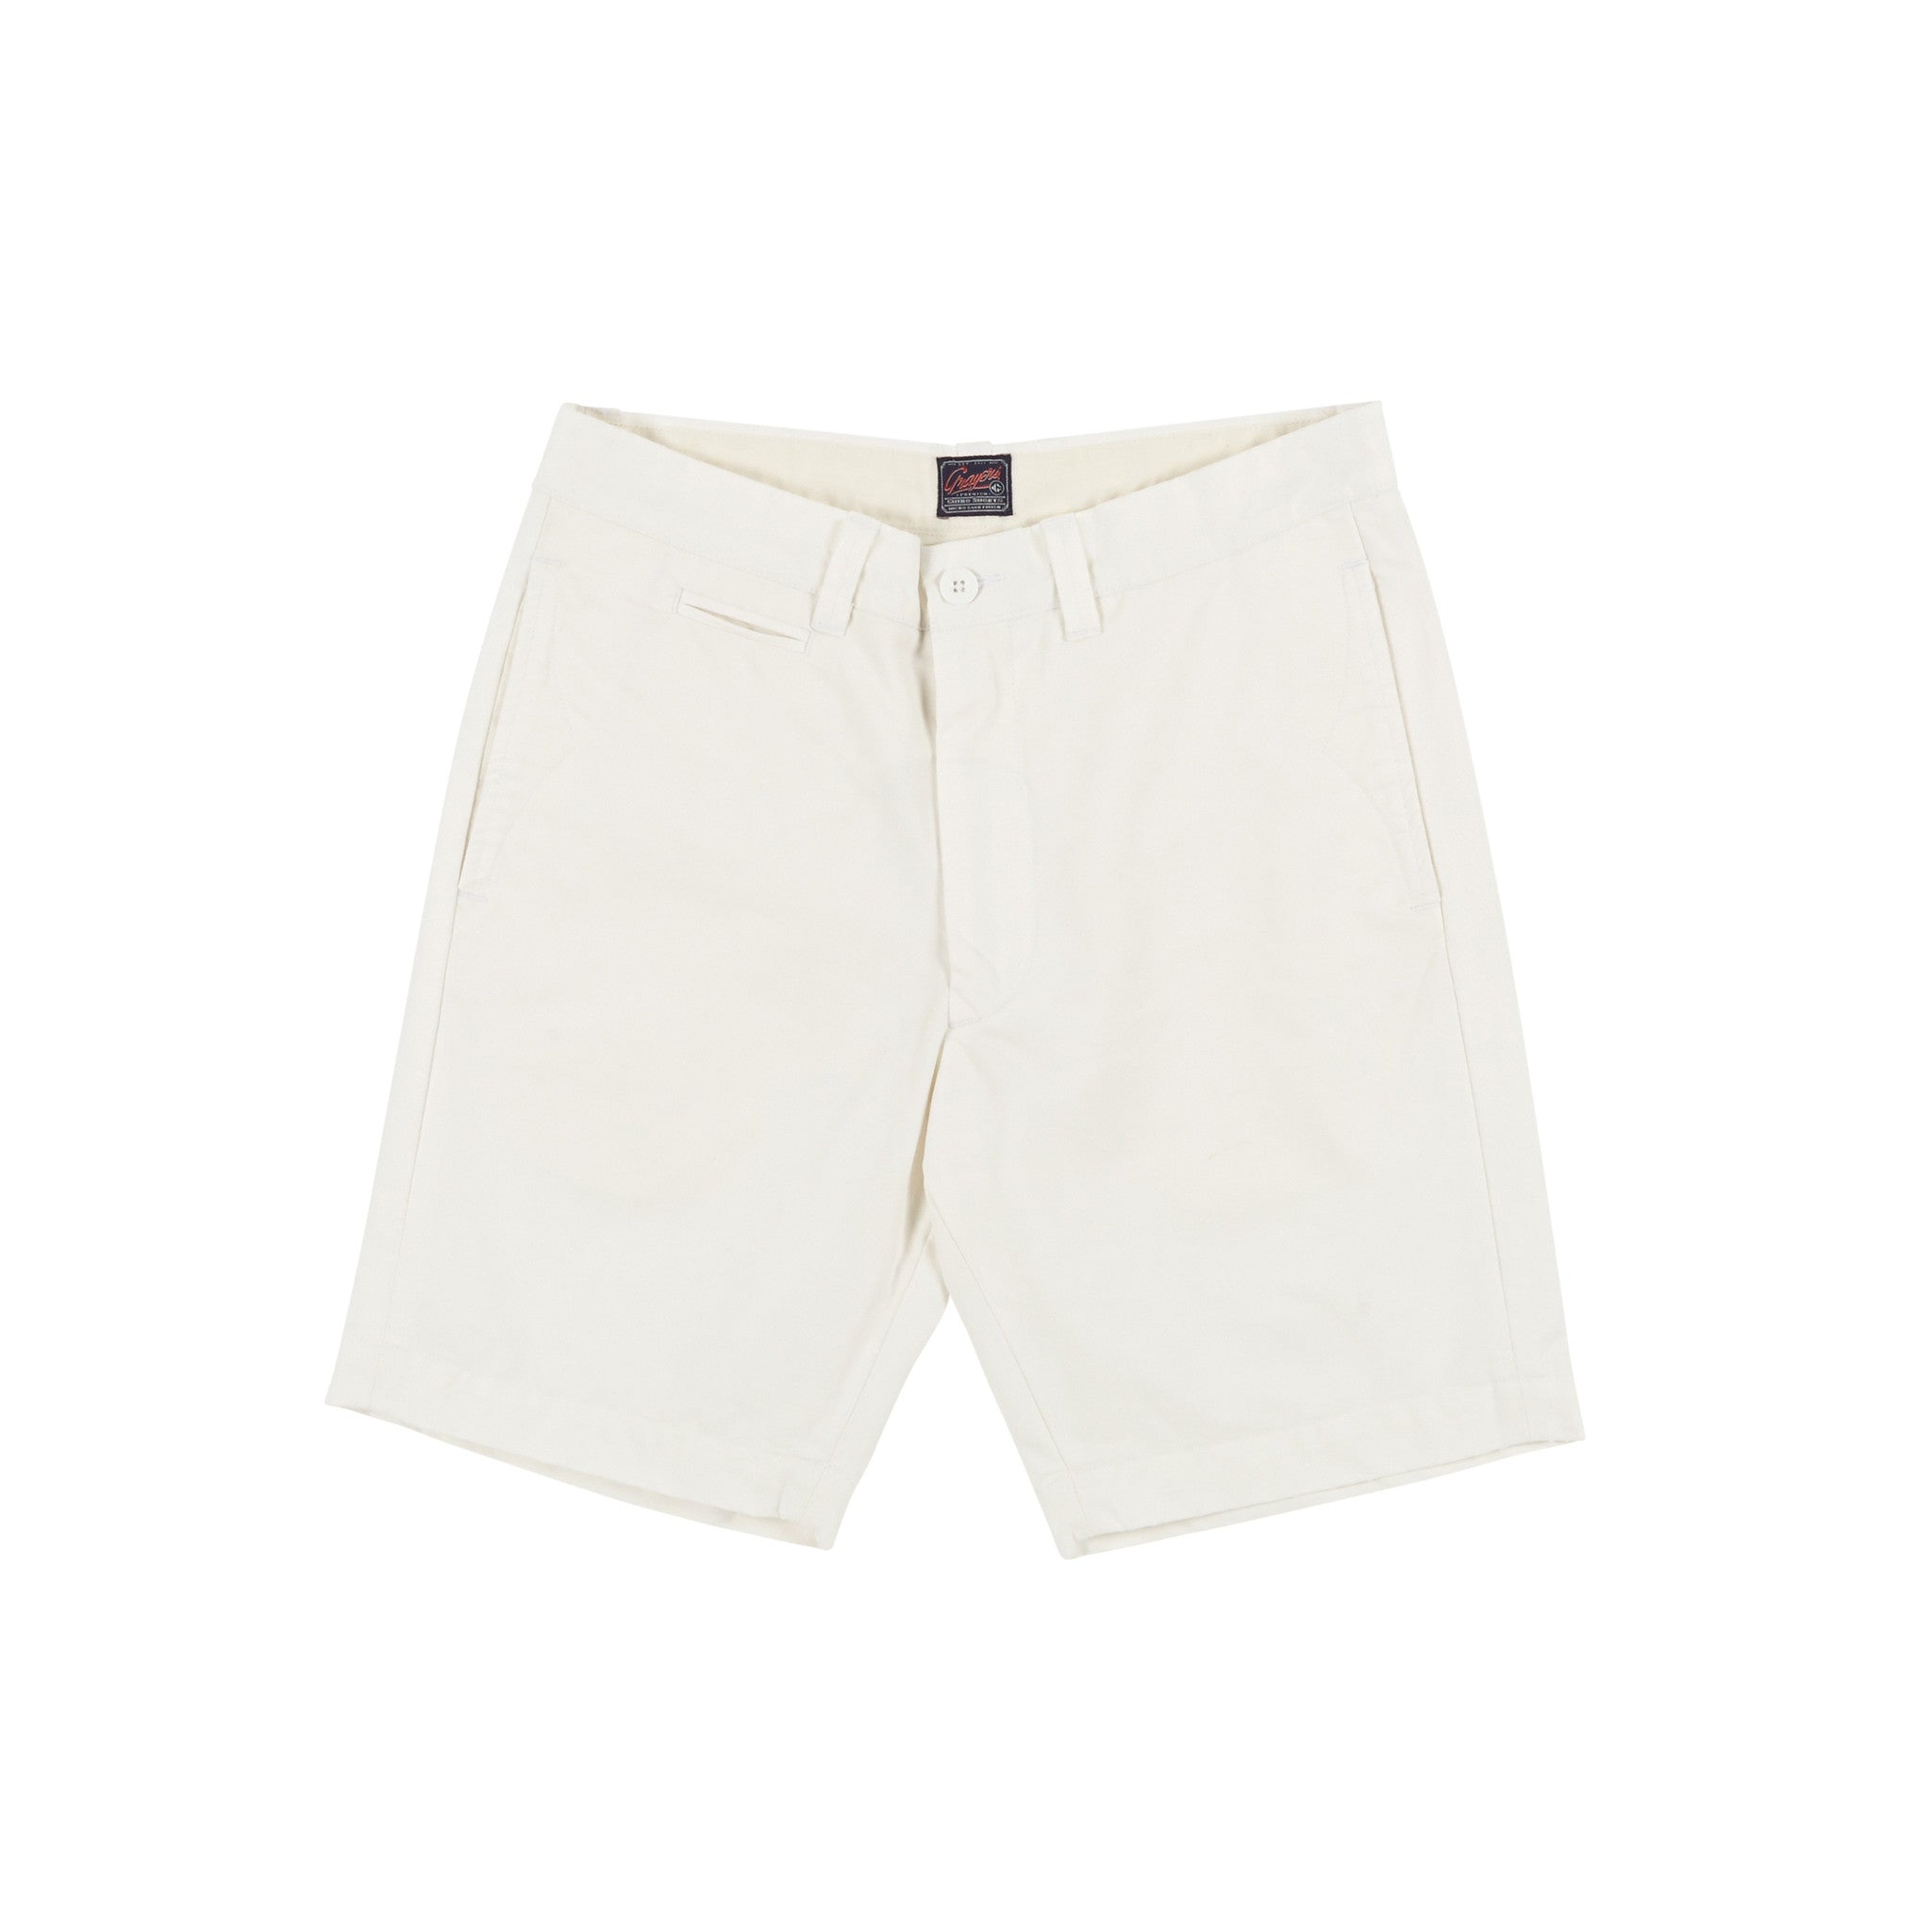 "9"" Newport Club Short - White"